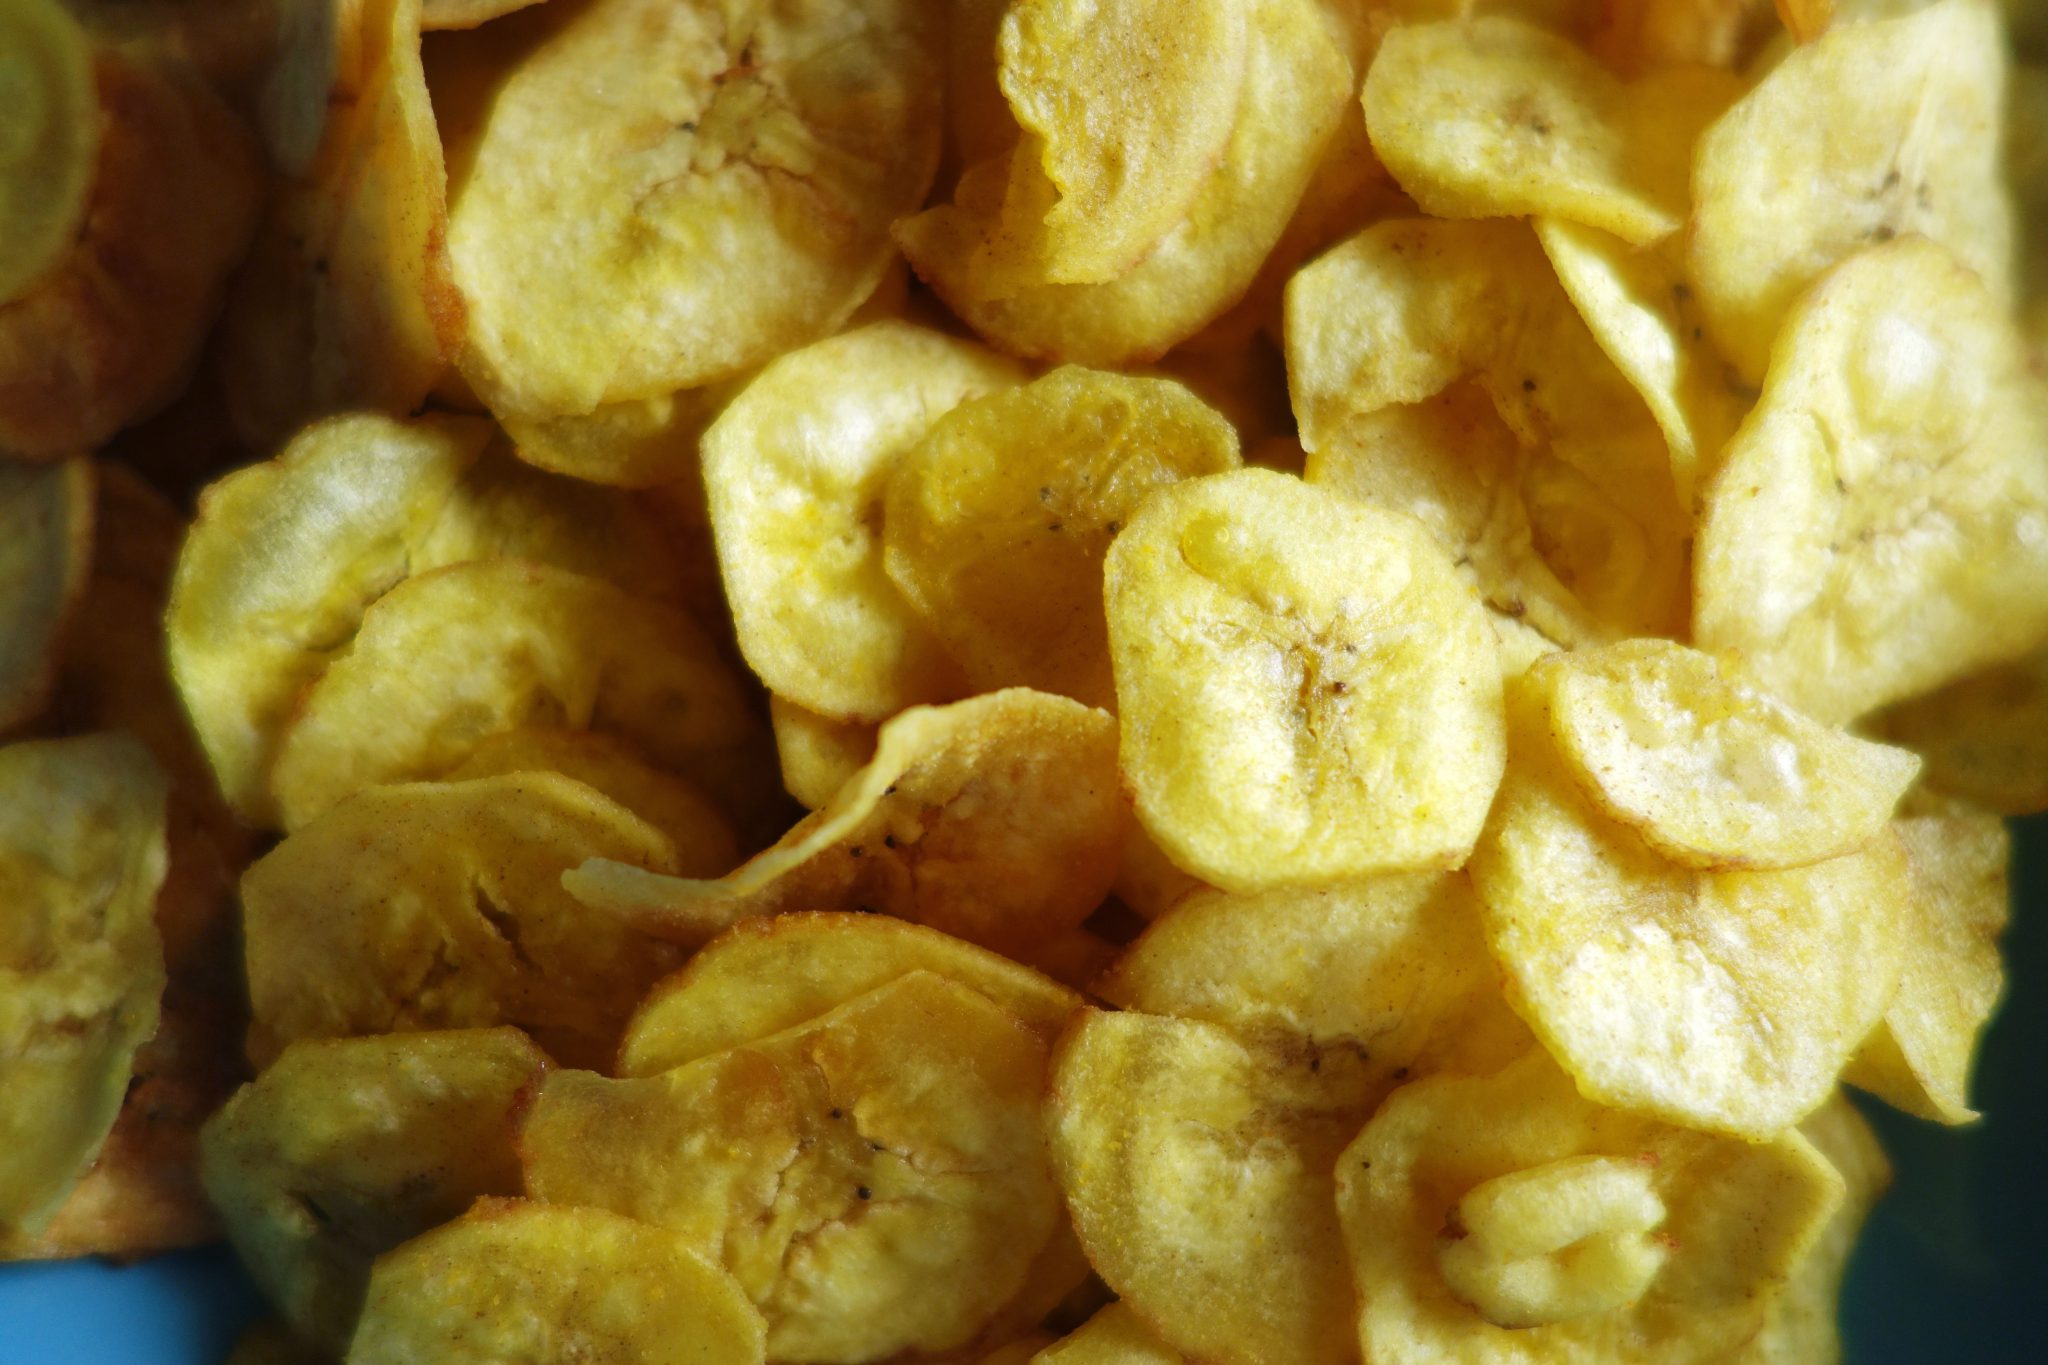 Banana Chips/Crisps recipe